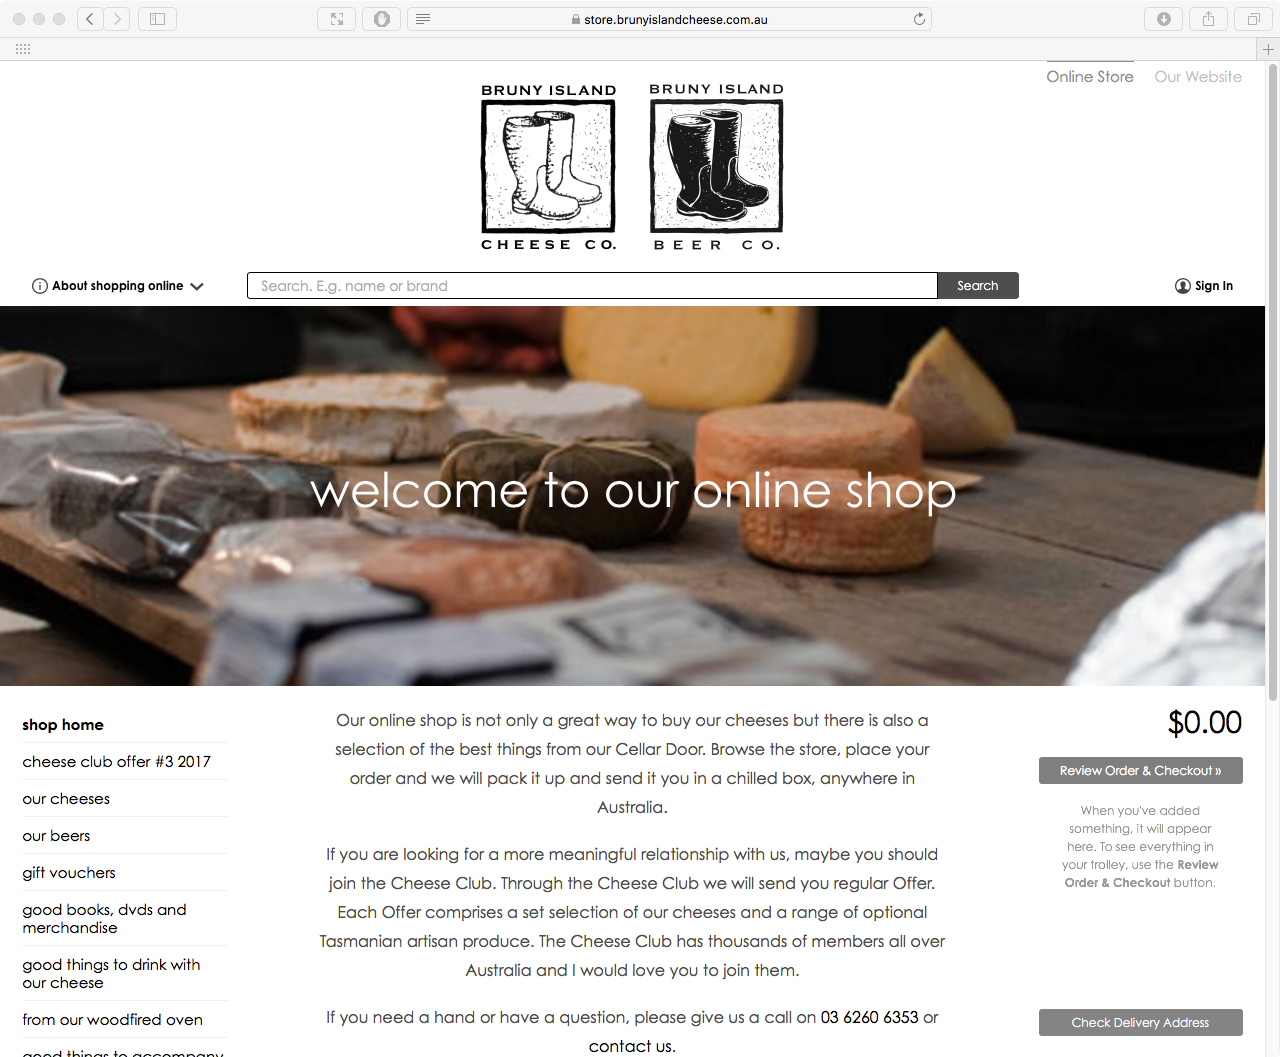 Click here to visit the Bruny Island Cheese Co online store